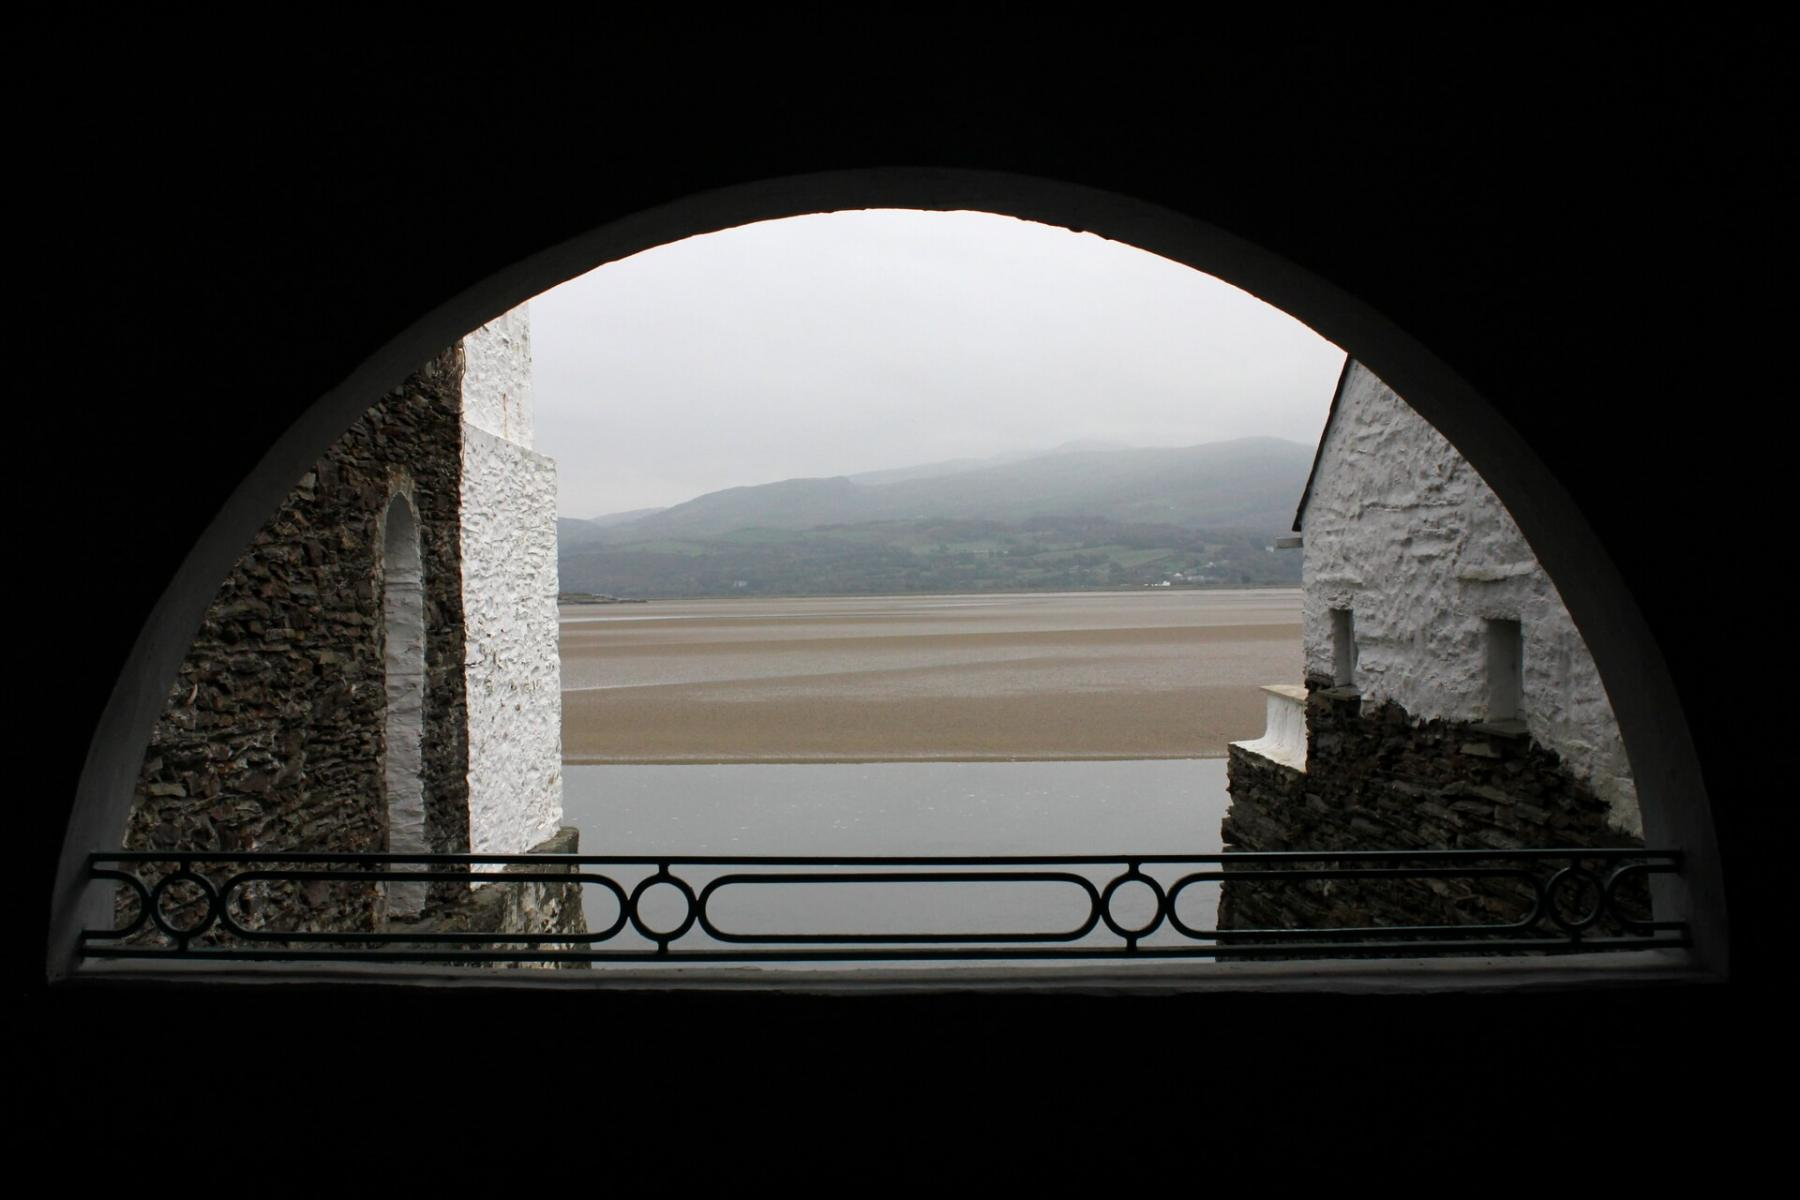 portmeirion-observatory-tower-view-of-eastuary-3